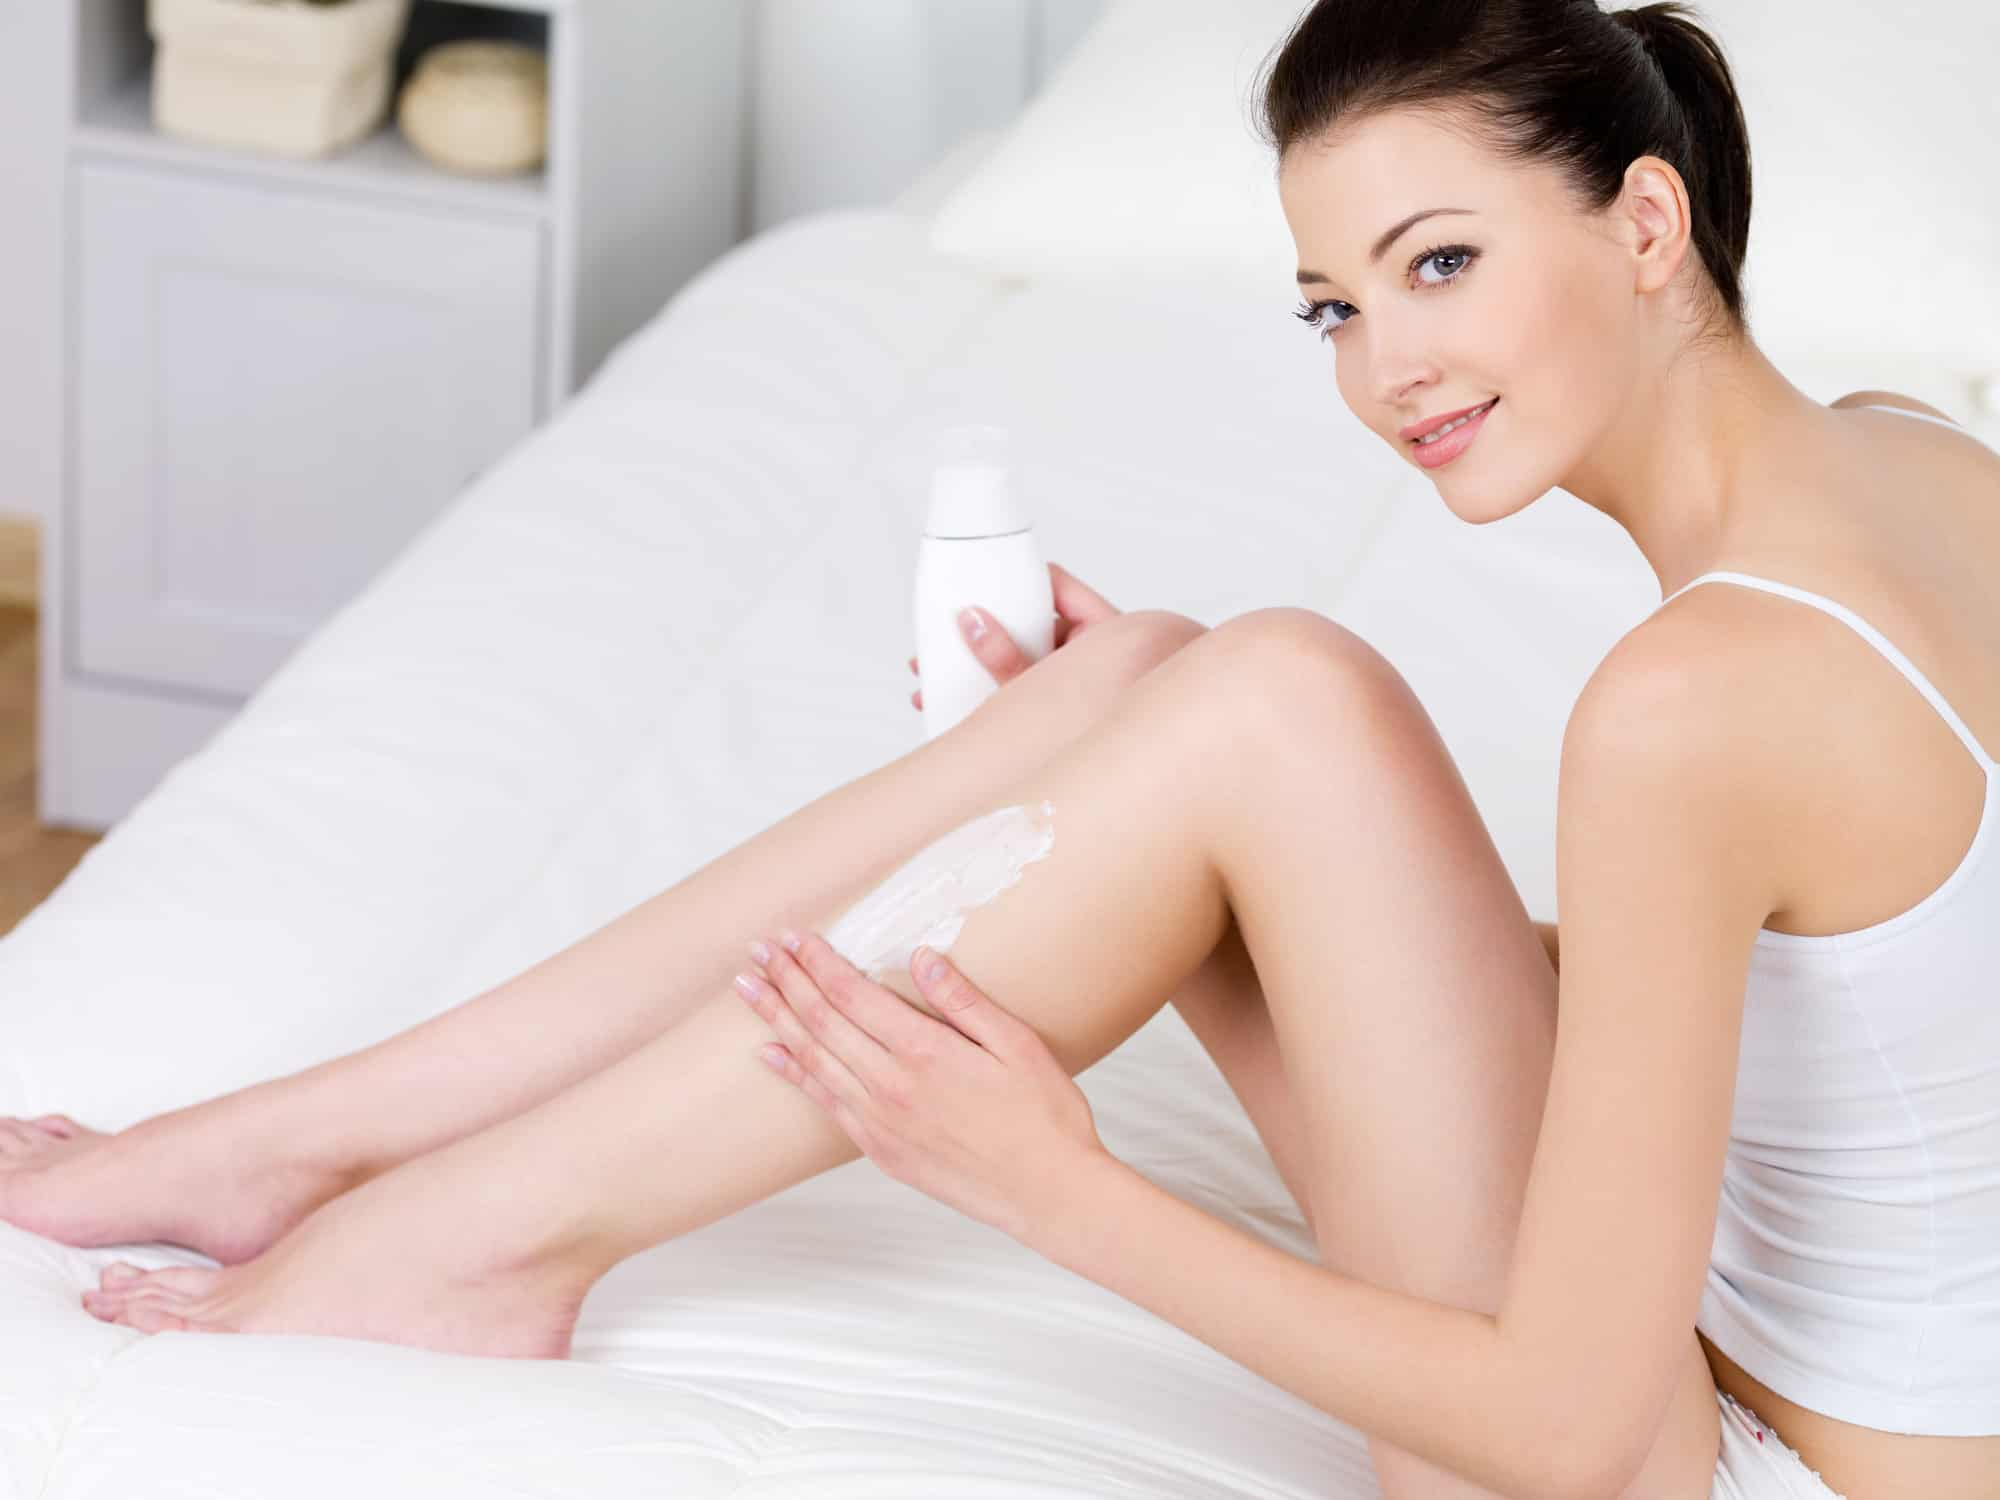 Young beautiful woman applying body lotion on her attractive legs indoors